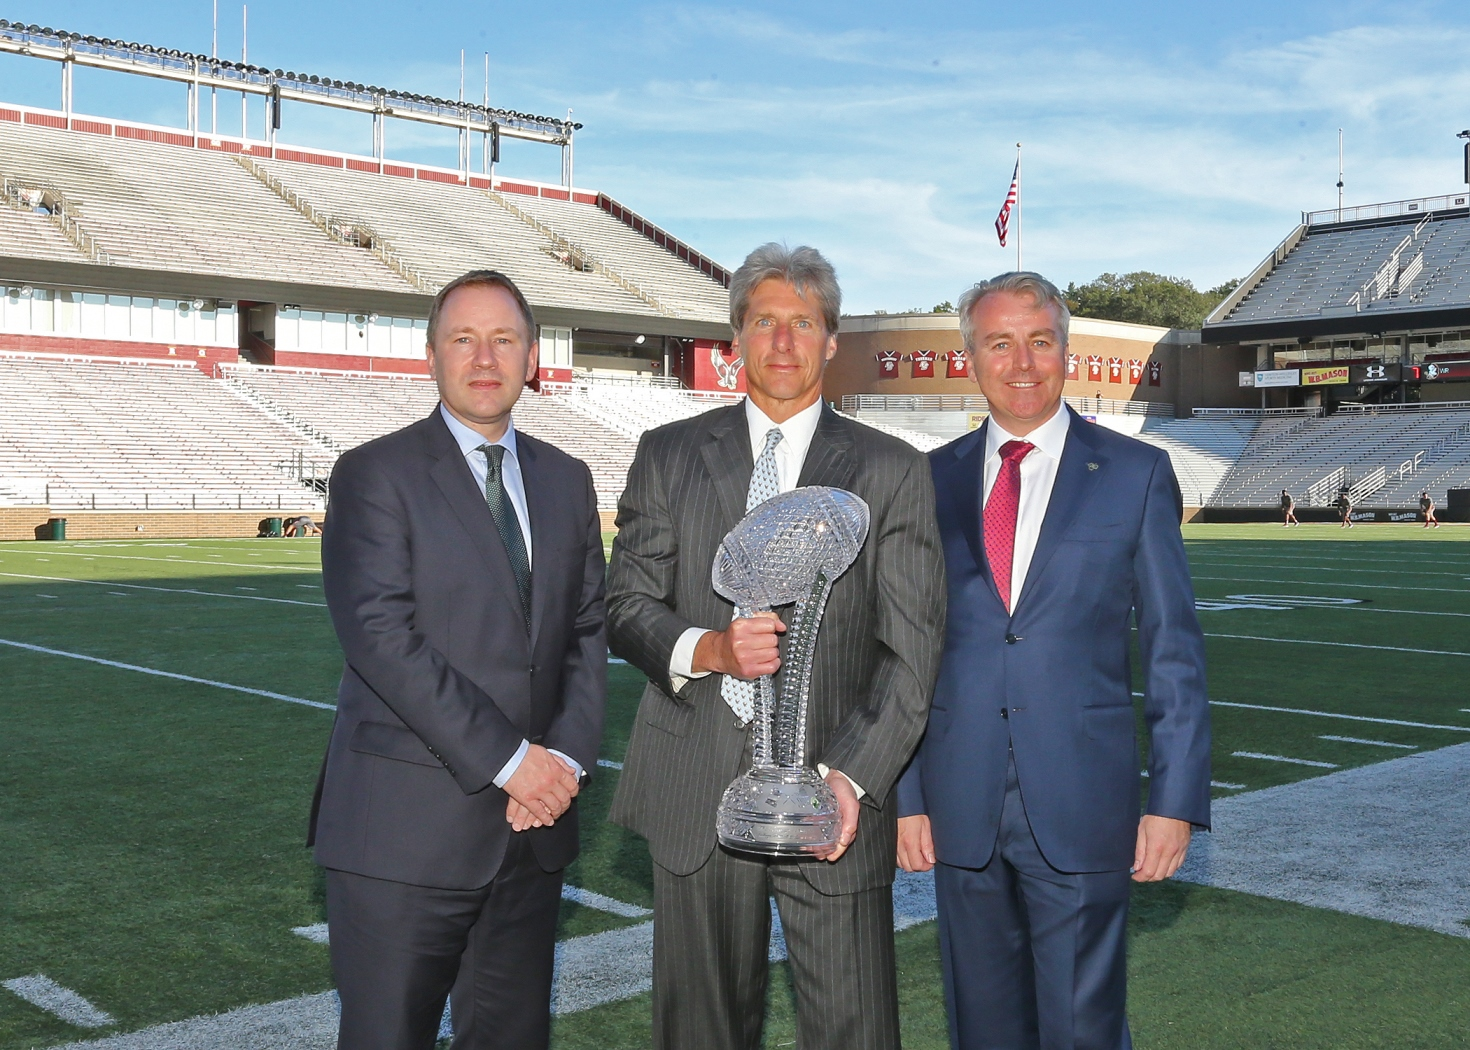 Pictured at the presentation of the Keough-Naughton Trophy at Boston College were L-R: Stephen Kavanagh, CEO Aer Lingus; Brad Bates, Boston College Director of Athletics; and Neil Naughton, chairman of the Aer Lingus College Football Classic steering committee.